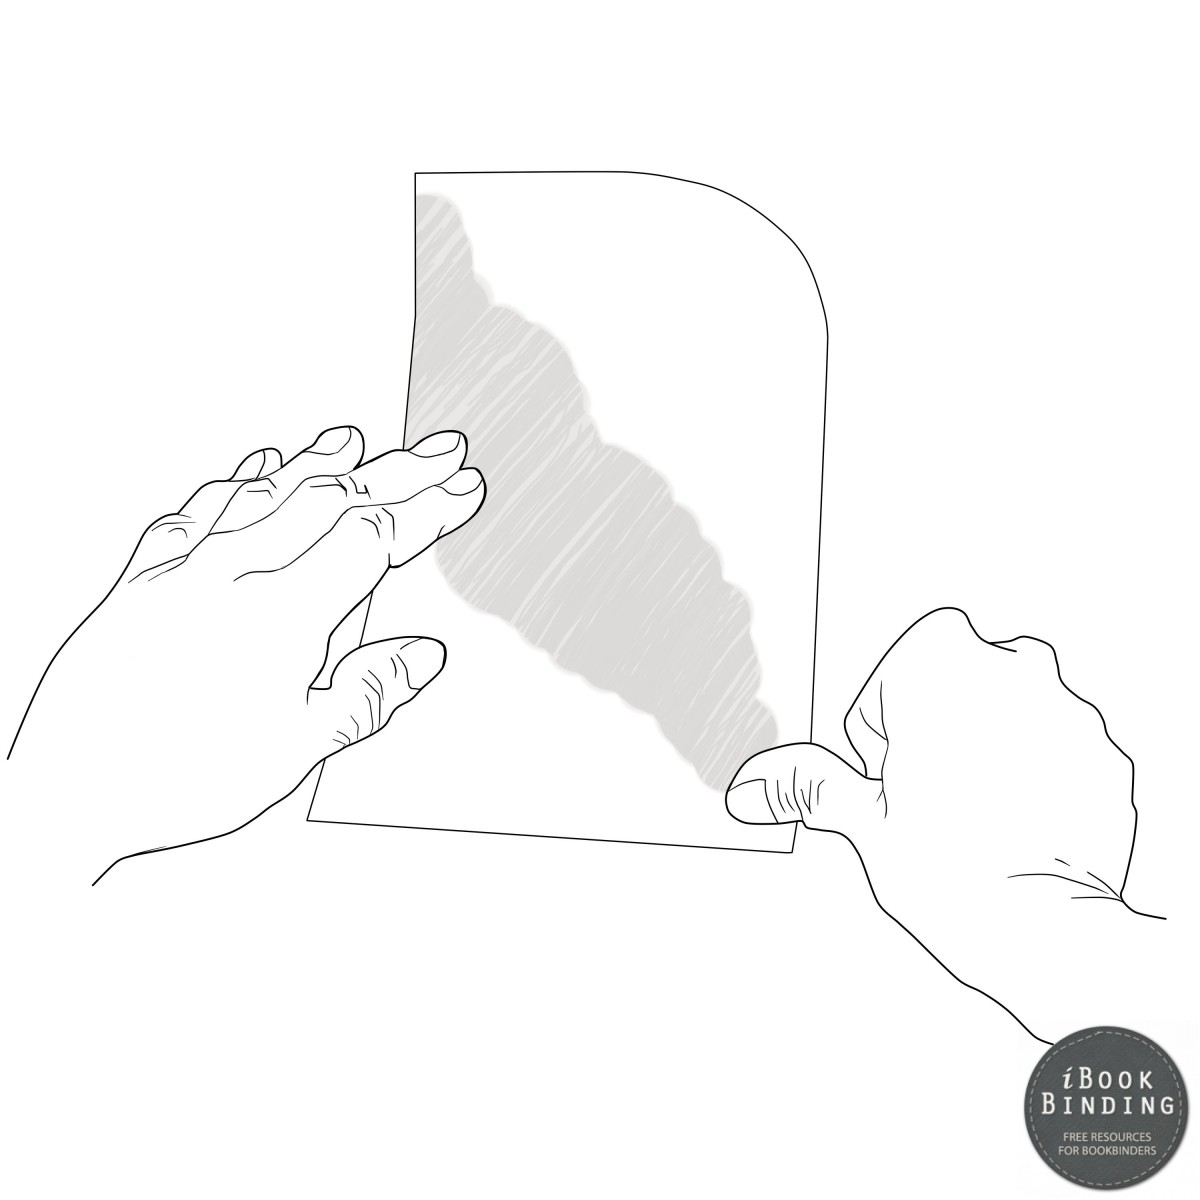 Figure 28 - Lighting Folding the Paper with your Thumb